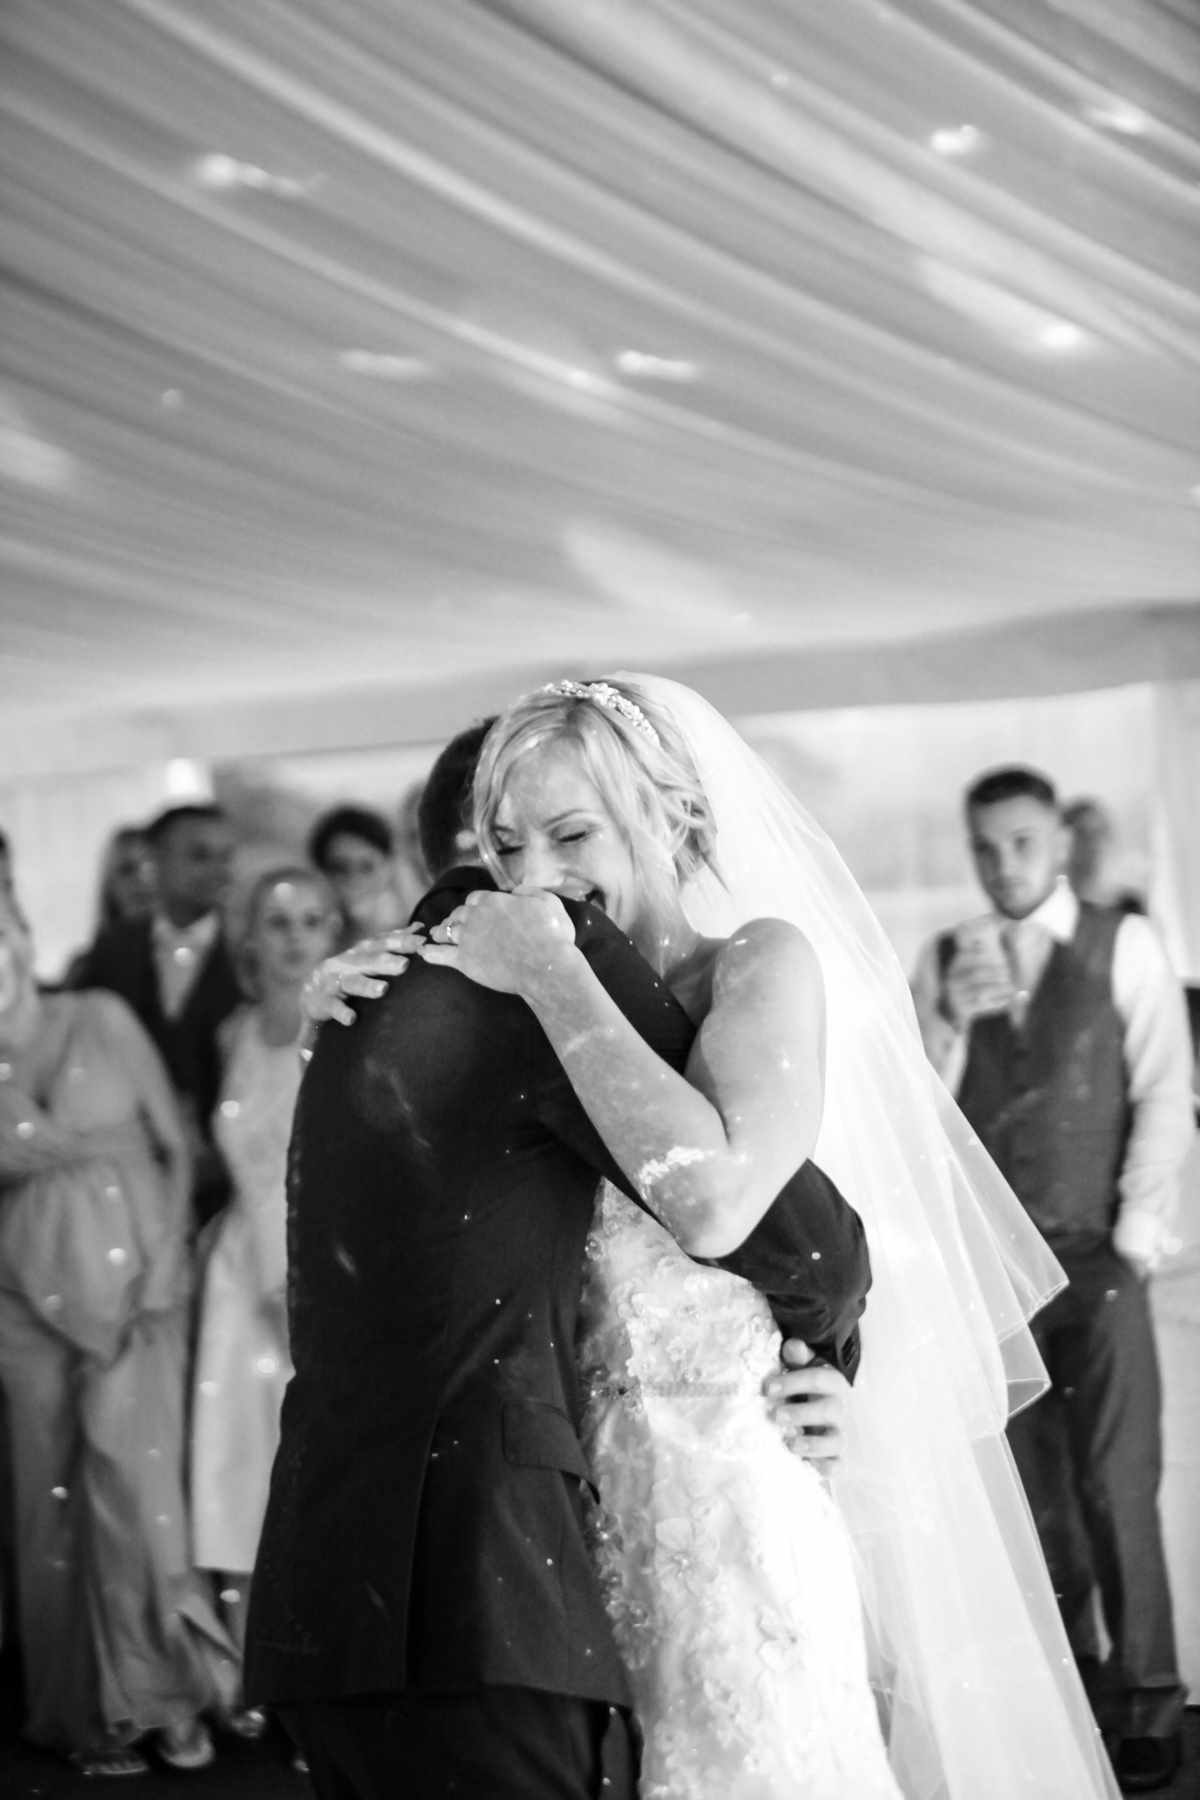 Bride holding onto her groom at her wedding whilst dancing. Romantic wedding photography.